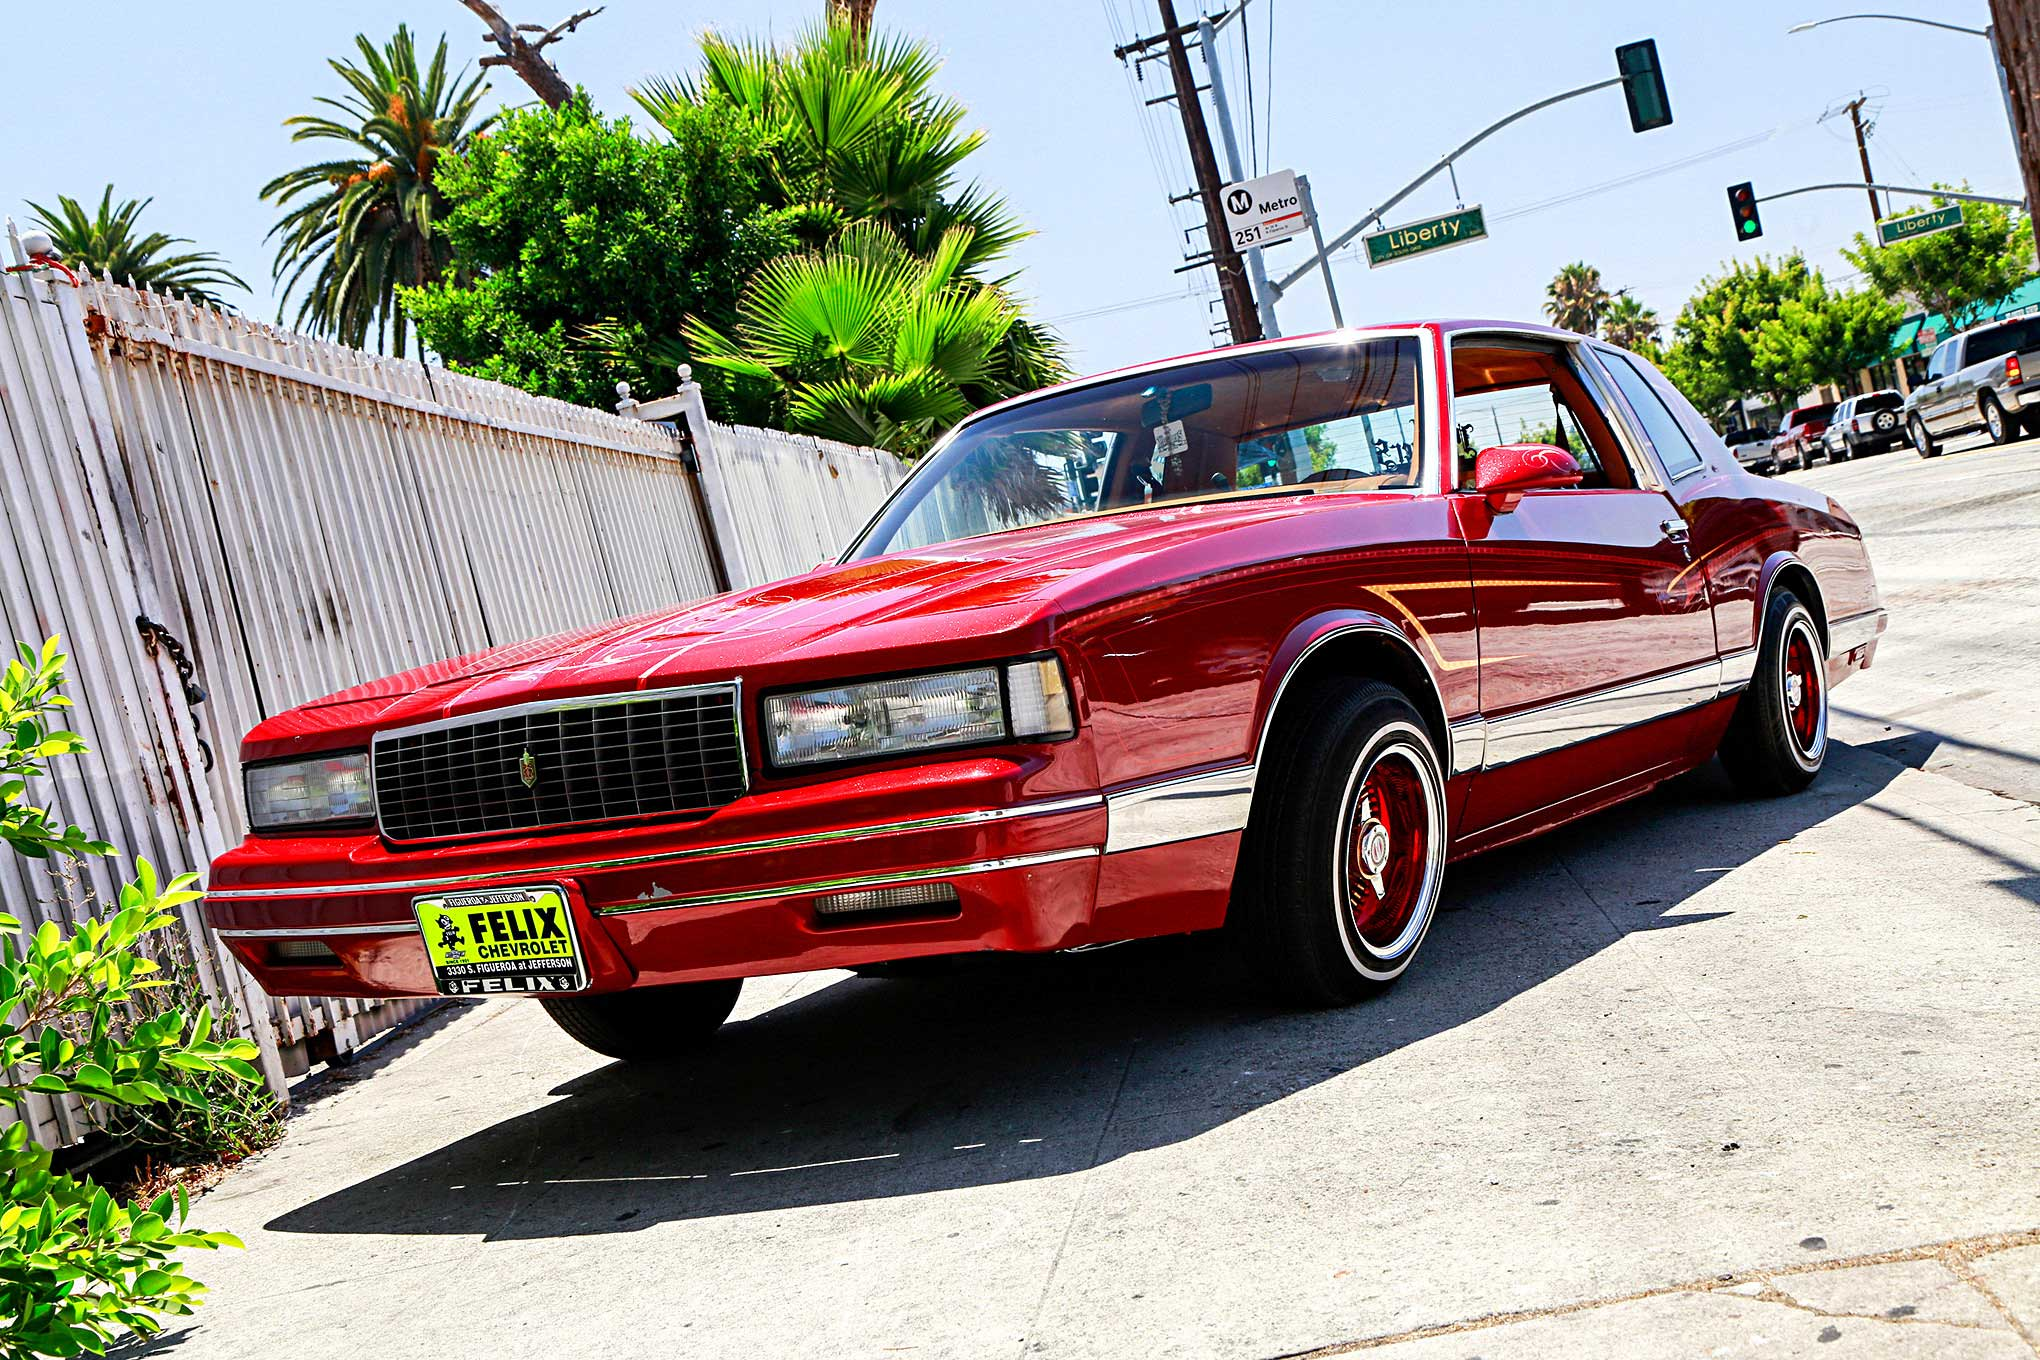 1987 Chevy Monte Carlo - Bloody Money